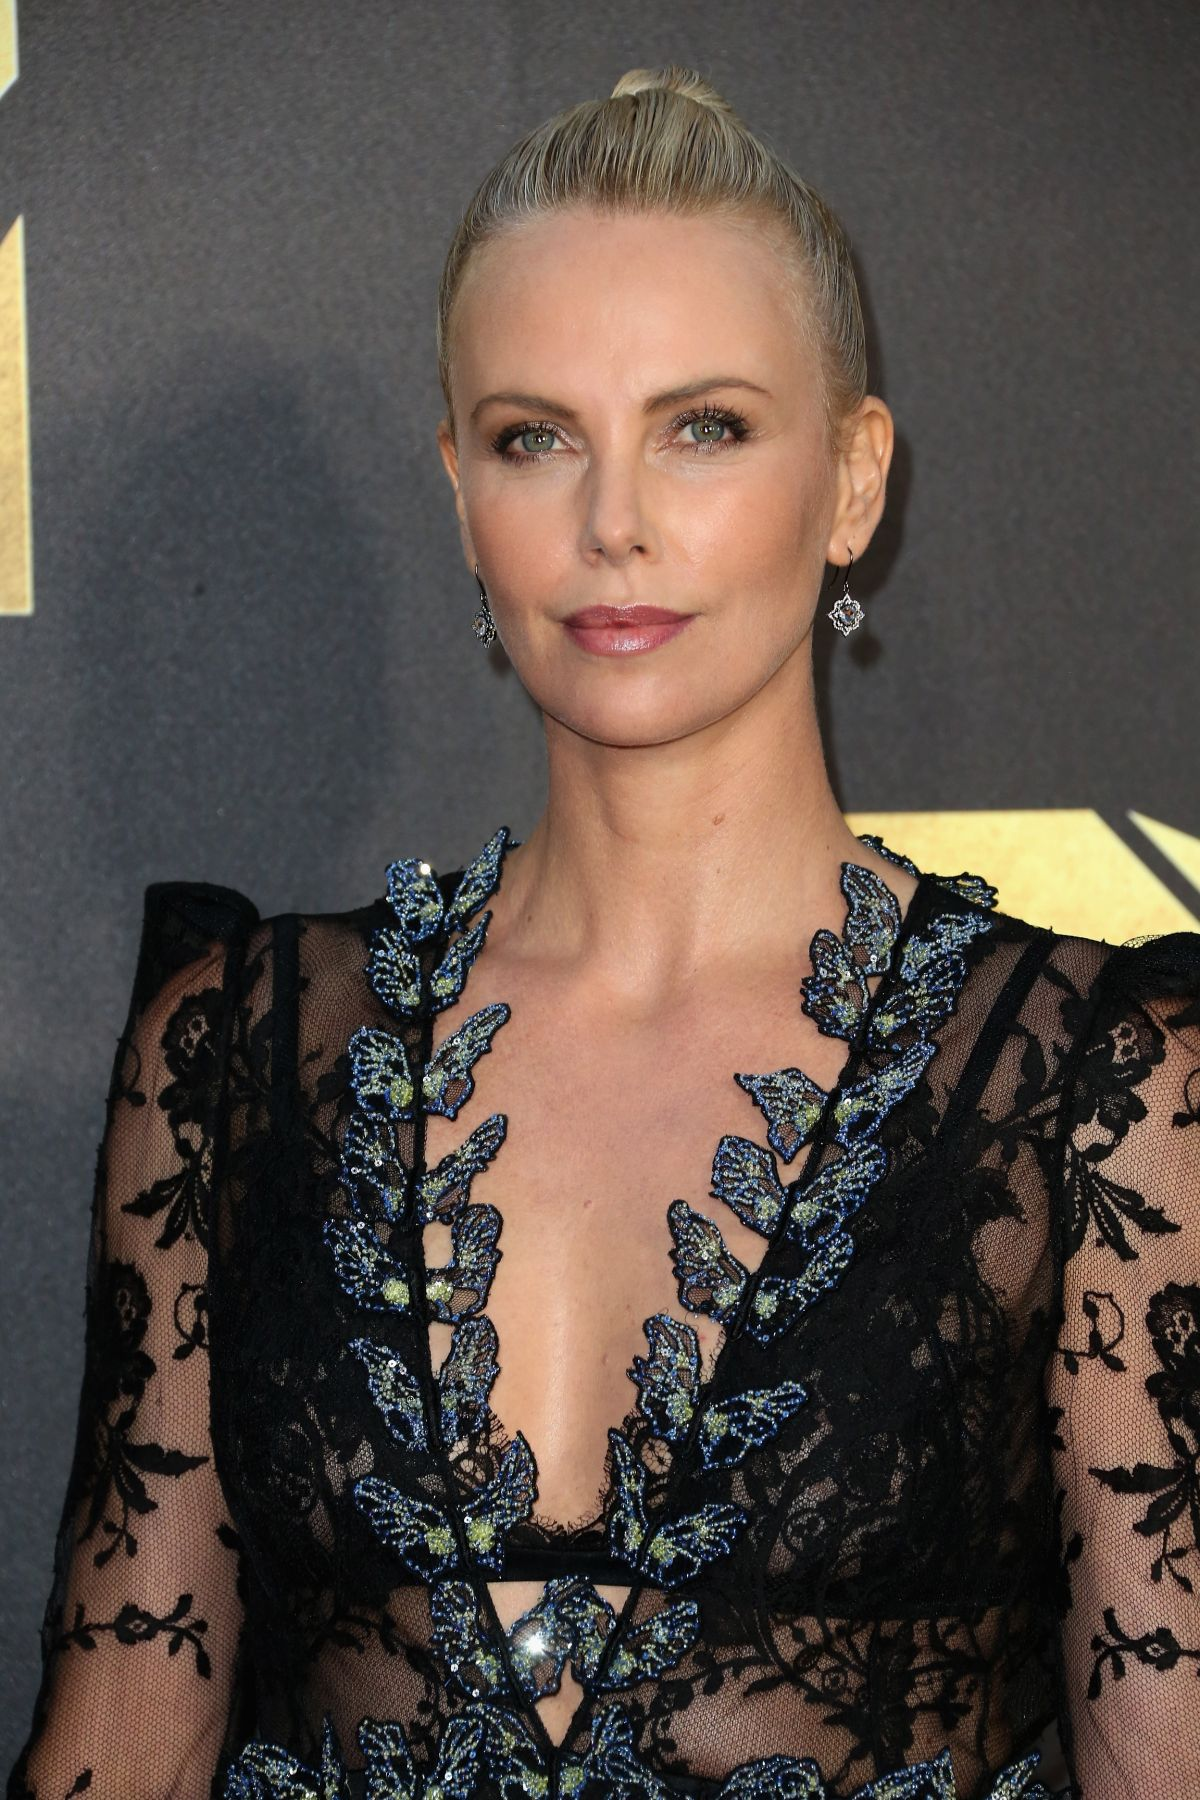 charlize-theron-at-2016-mtv-movie-awards-in-burbank-04-09-2016_1